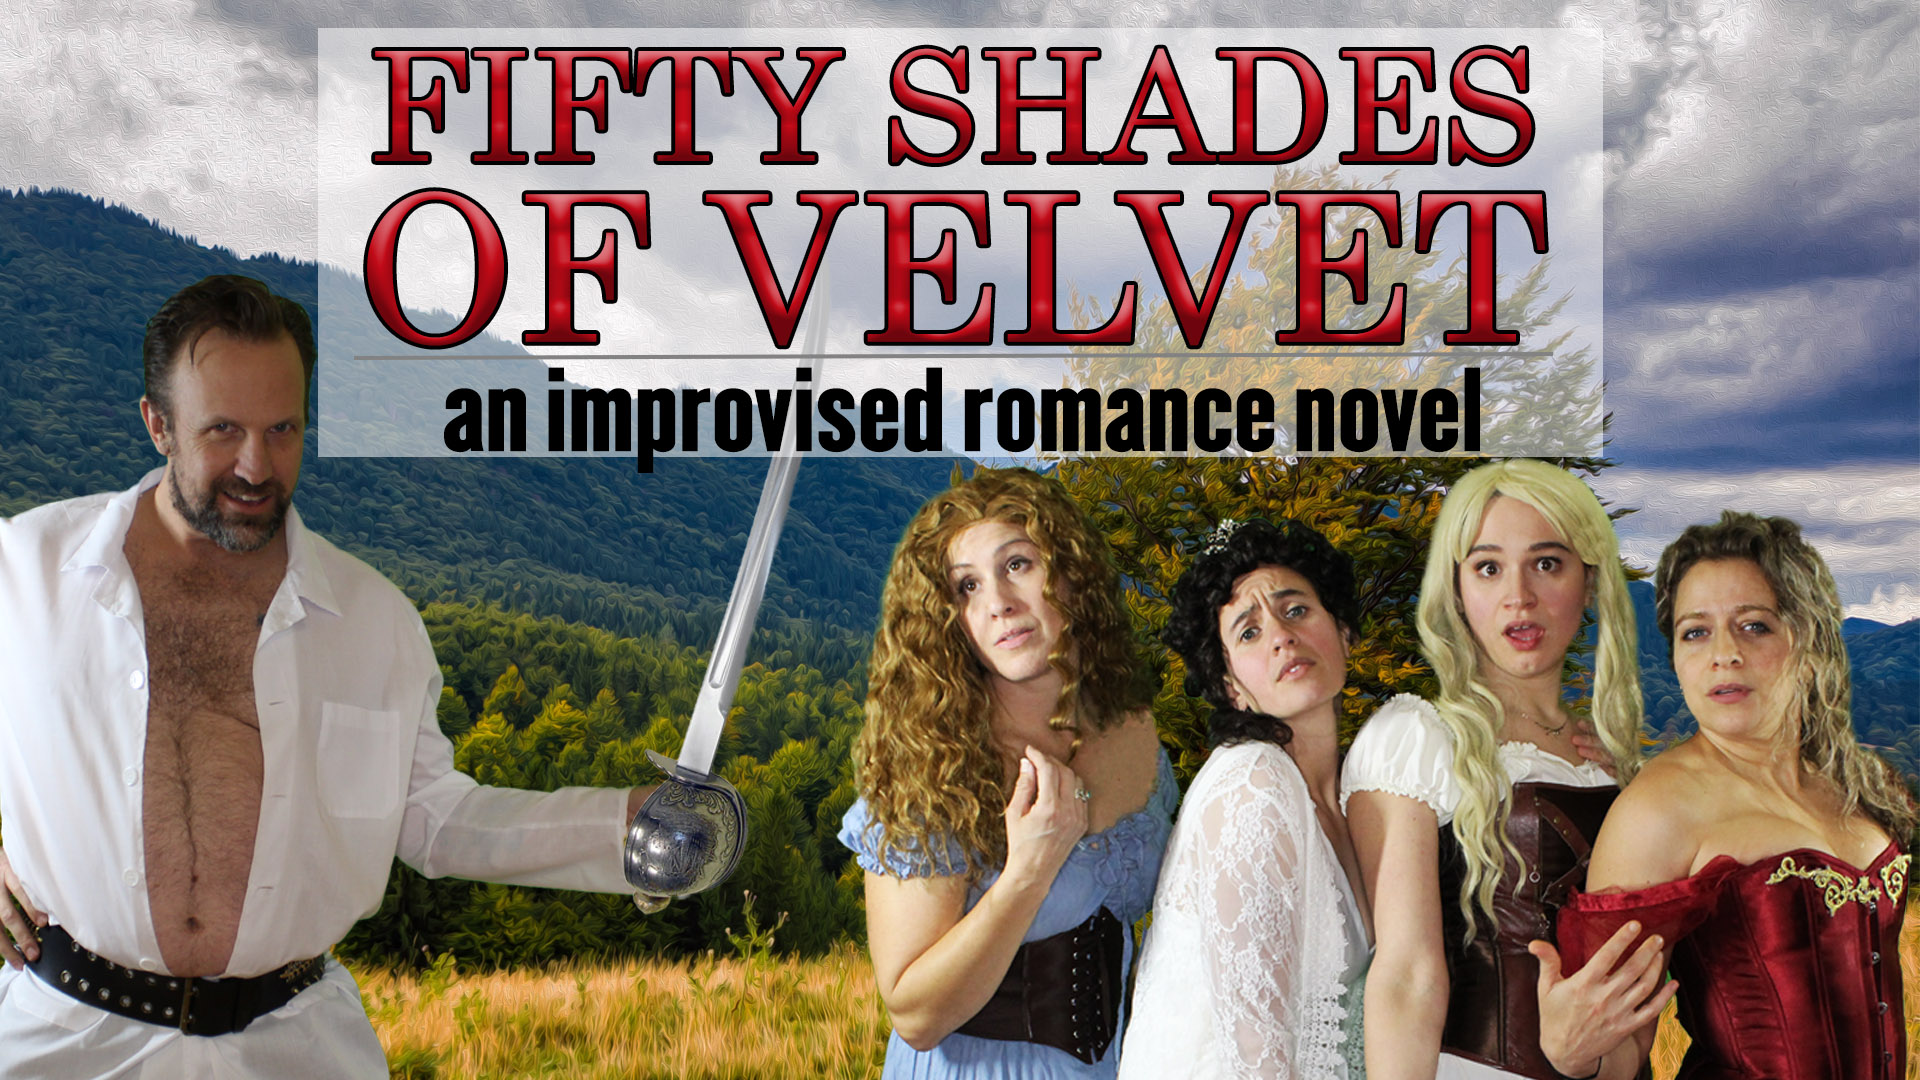 Fifty Shades of Velvet | The Upfront Theatre